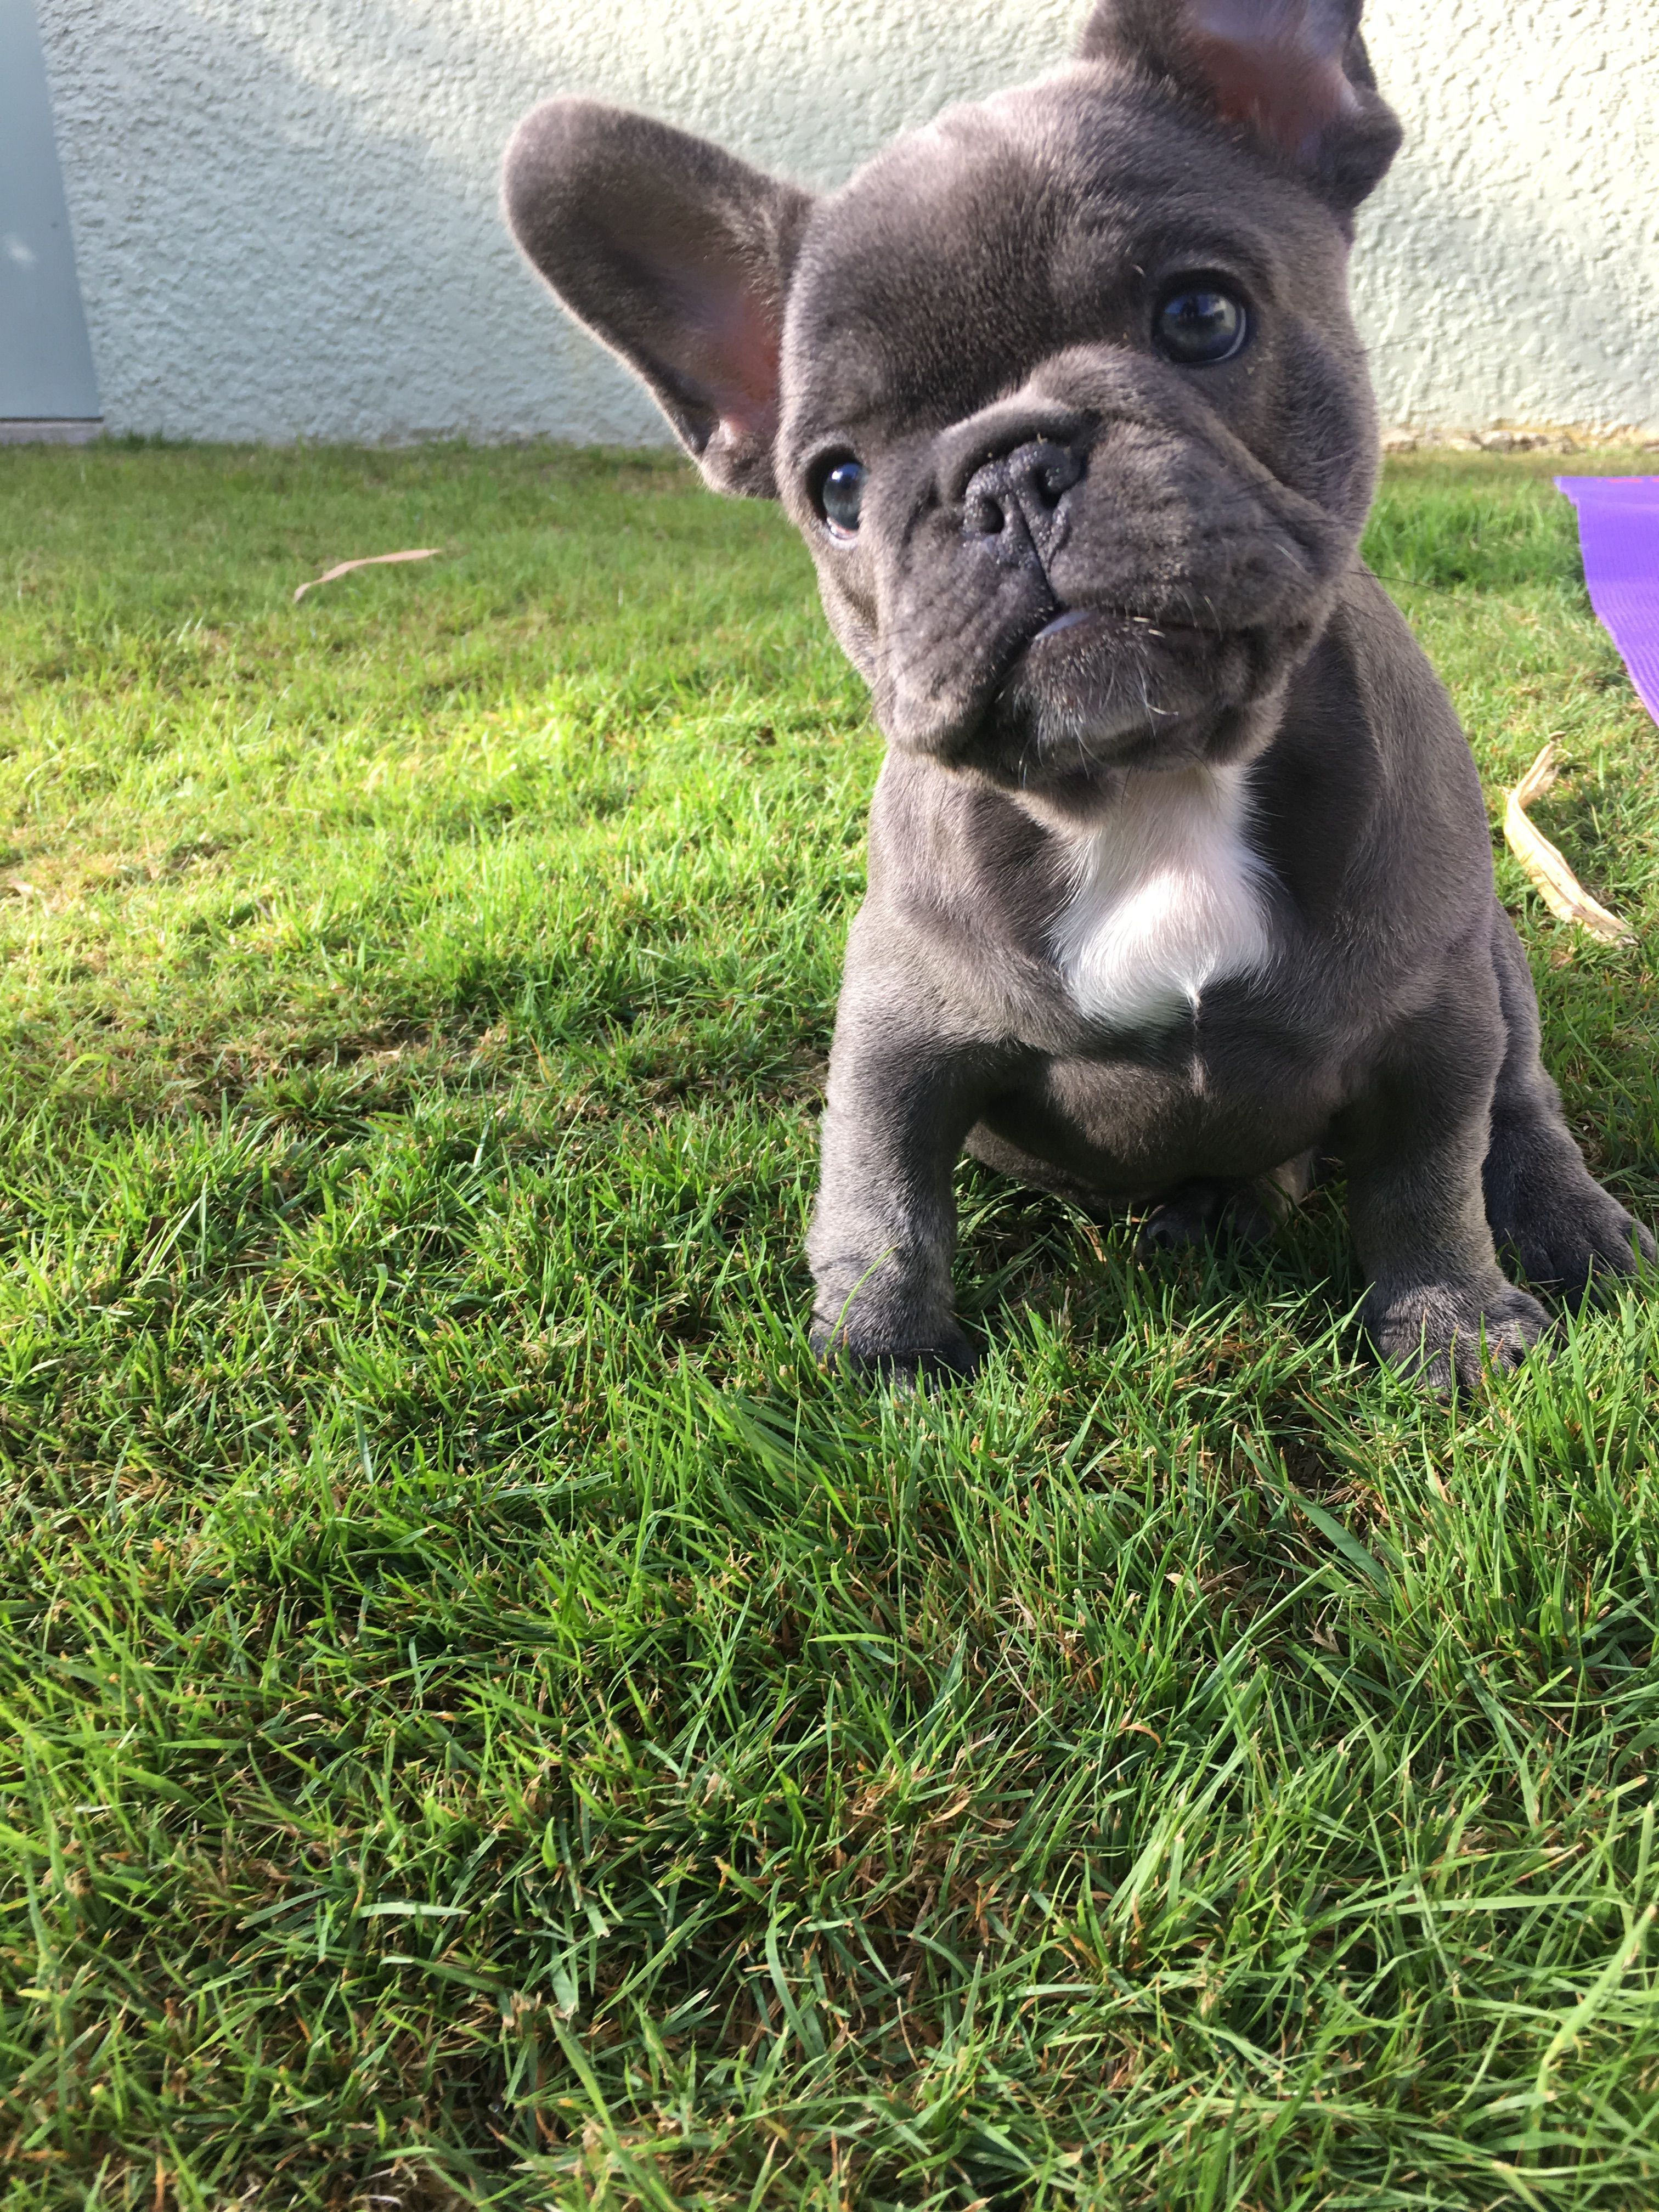 my darling margot the 8 week old french bulldog pup | i <3 frenchies